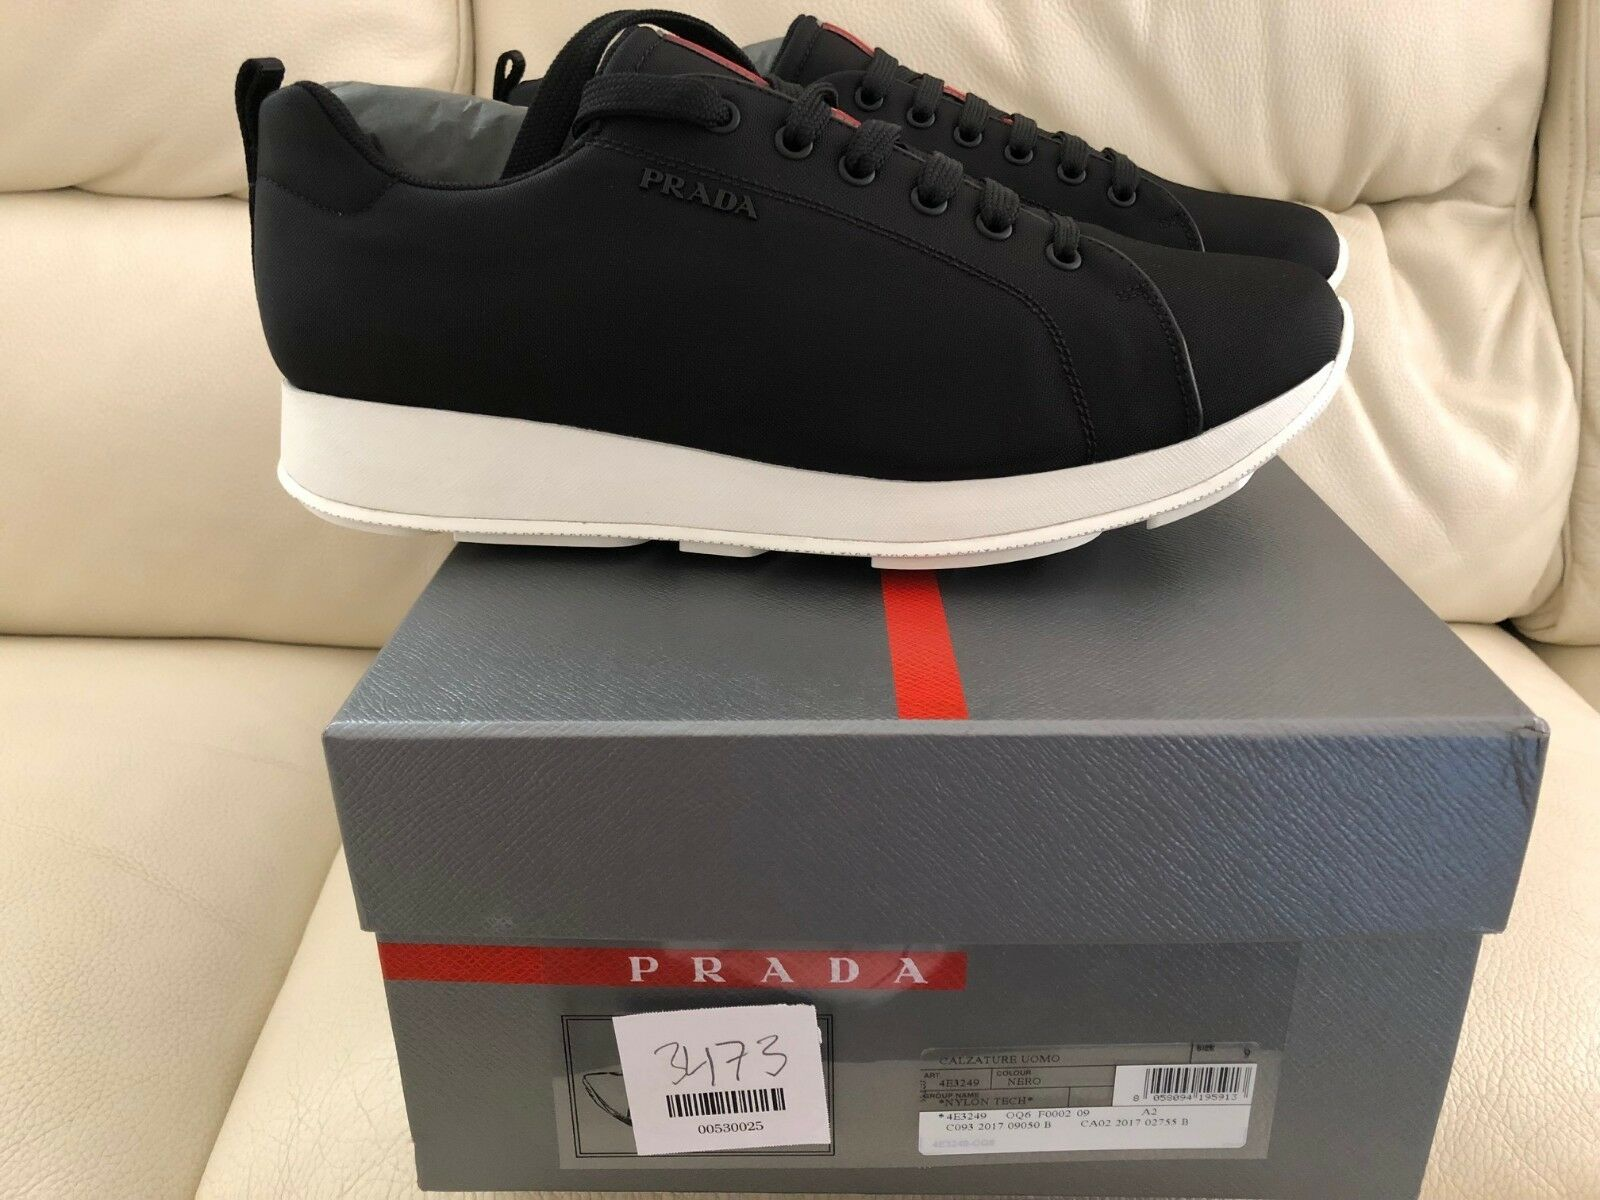 PRADA BEIGE   BEIGE Herren BLACK Weiß CANVAS TRAINERS SIZES UK 7 7.5 9 NEW e0a4e6